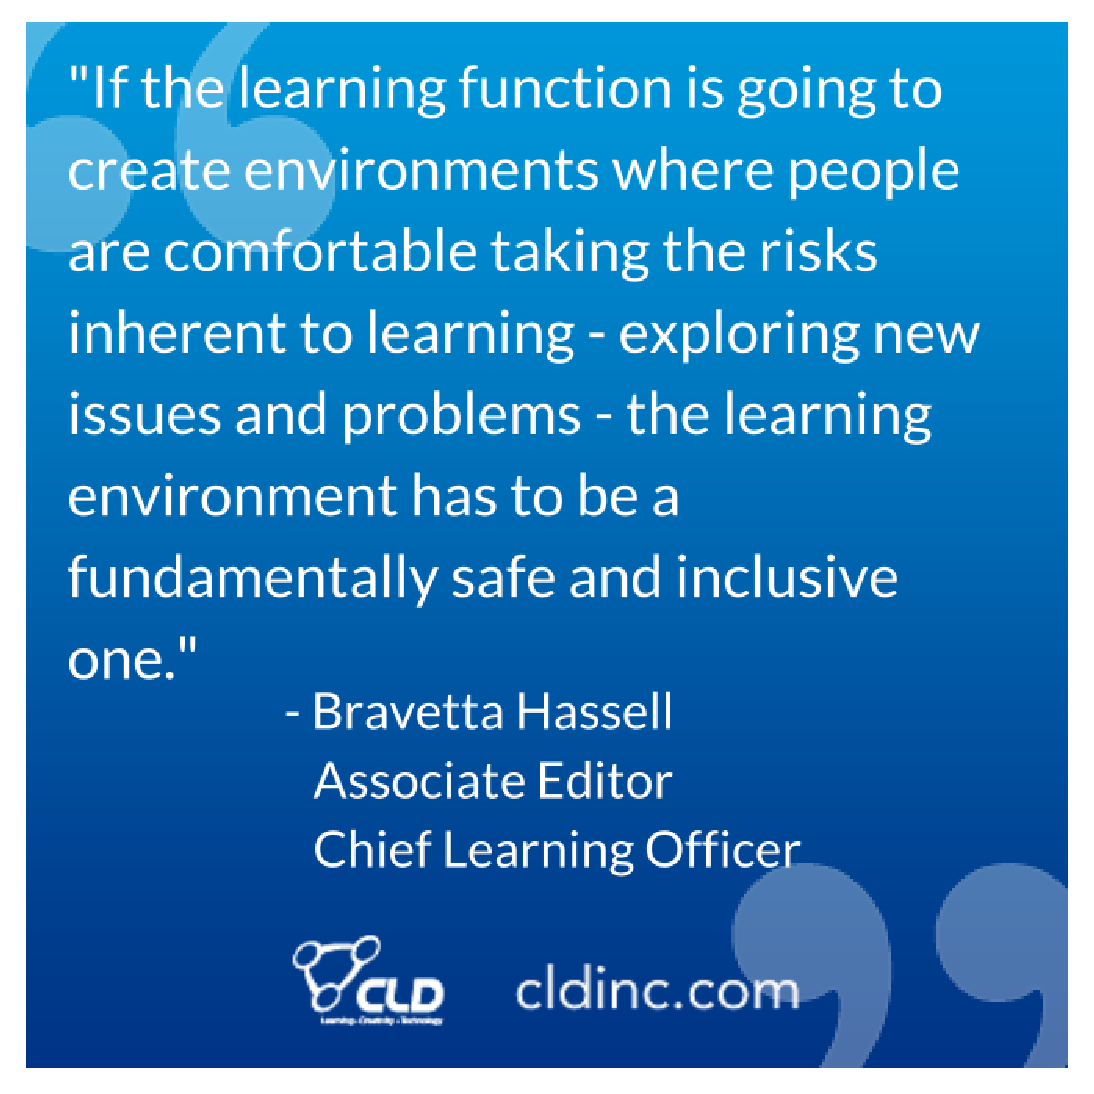 """If the learning function is going to create environments where people are comfortable taking the risks inherent to learning - exploring new issues and problems - the learning environment has to be a fundamentally safe and inclusive one."""